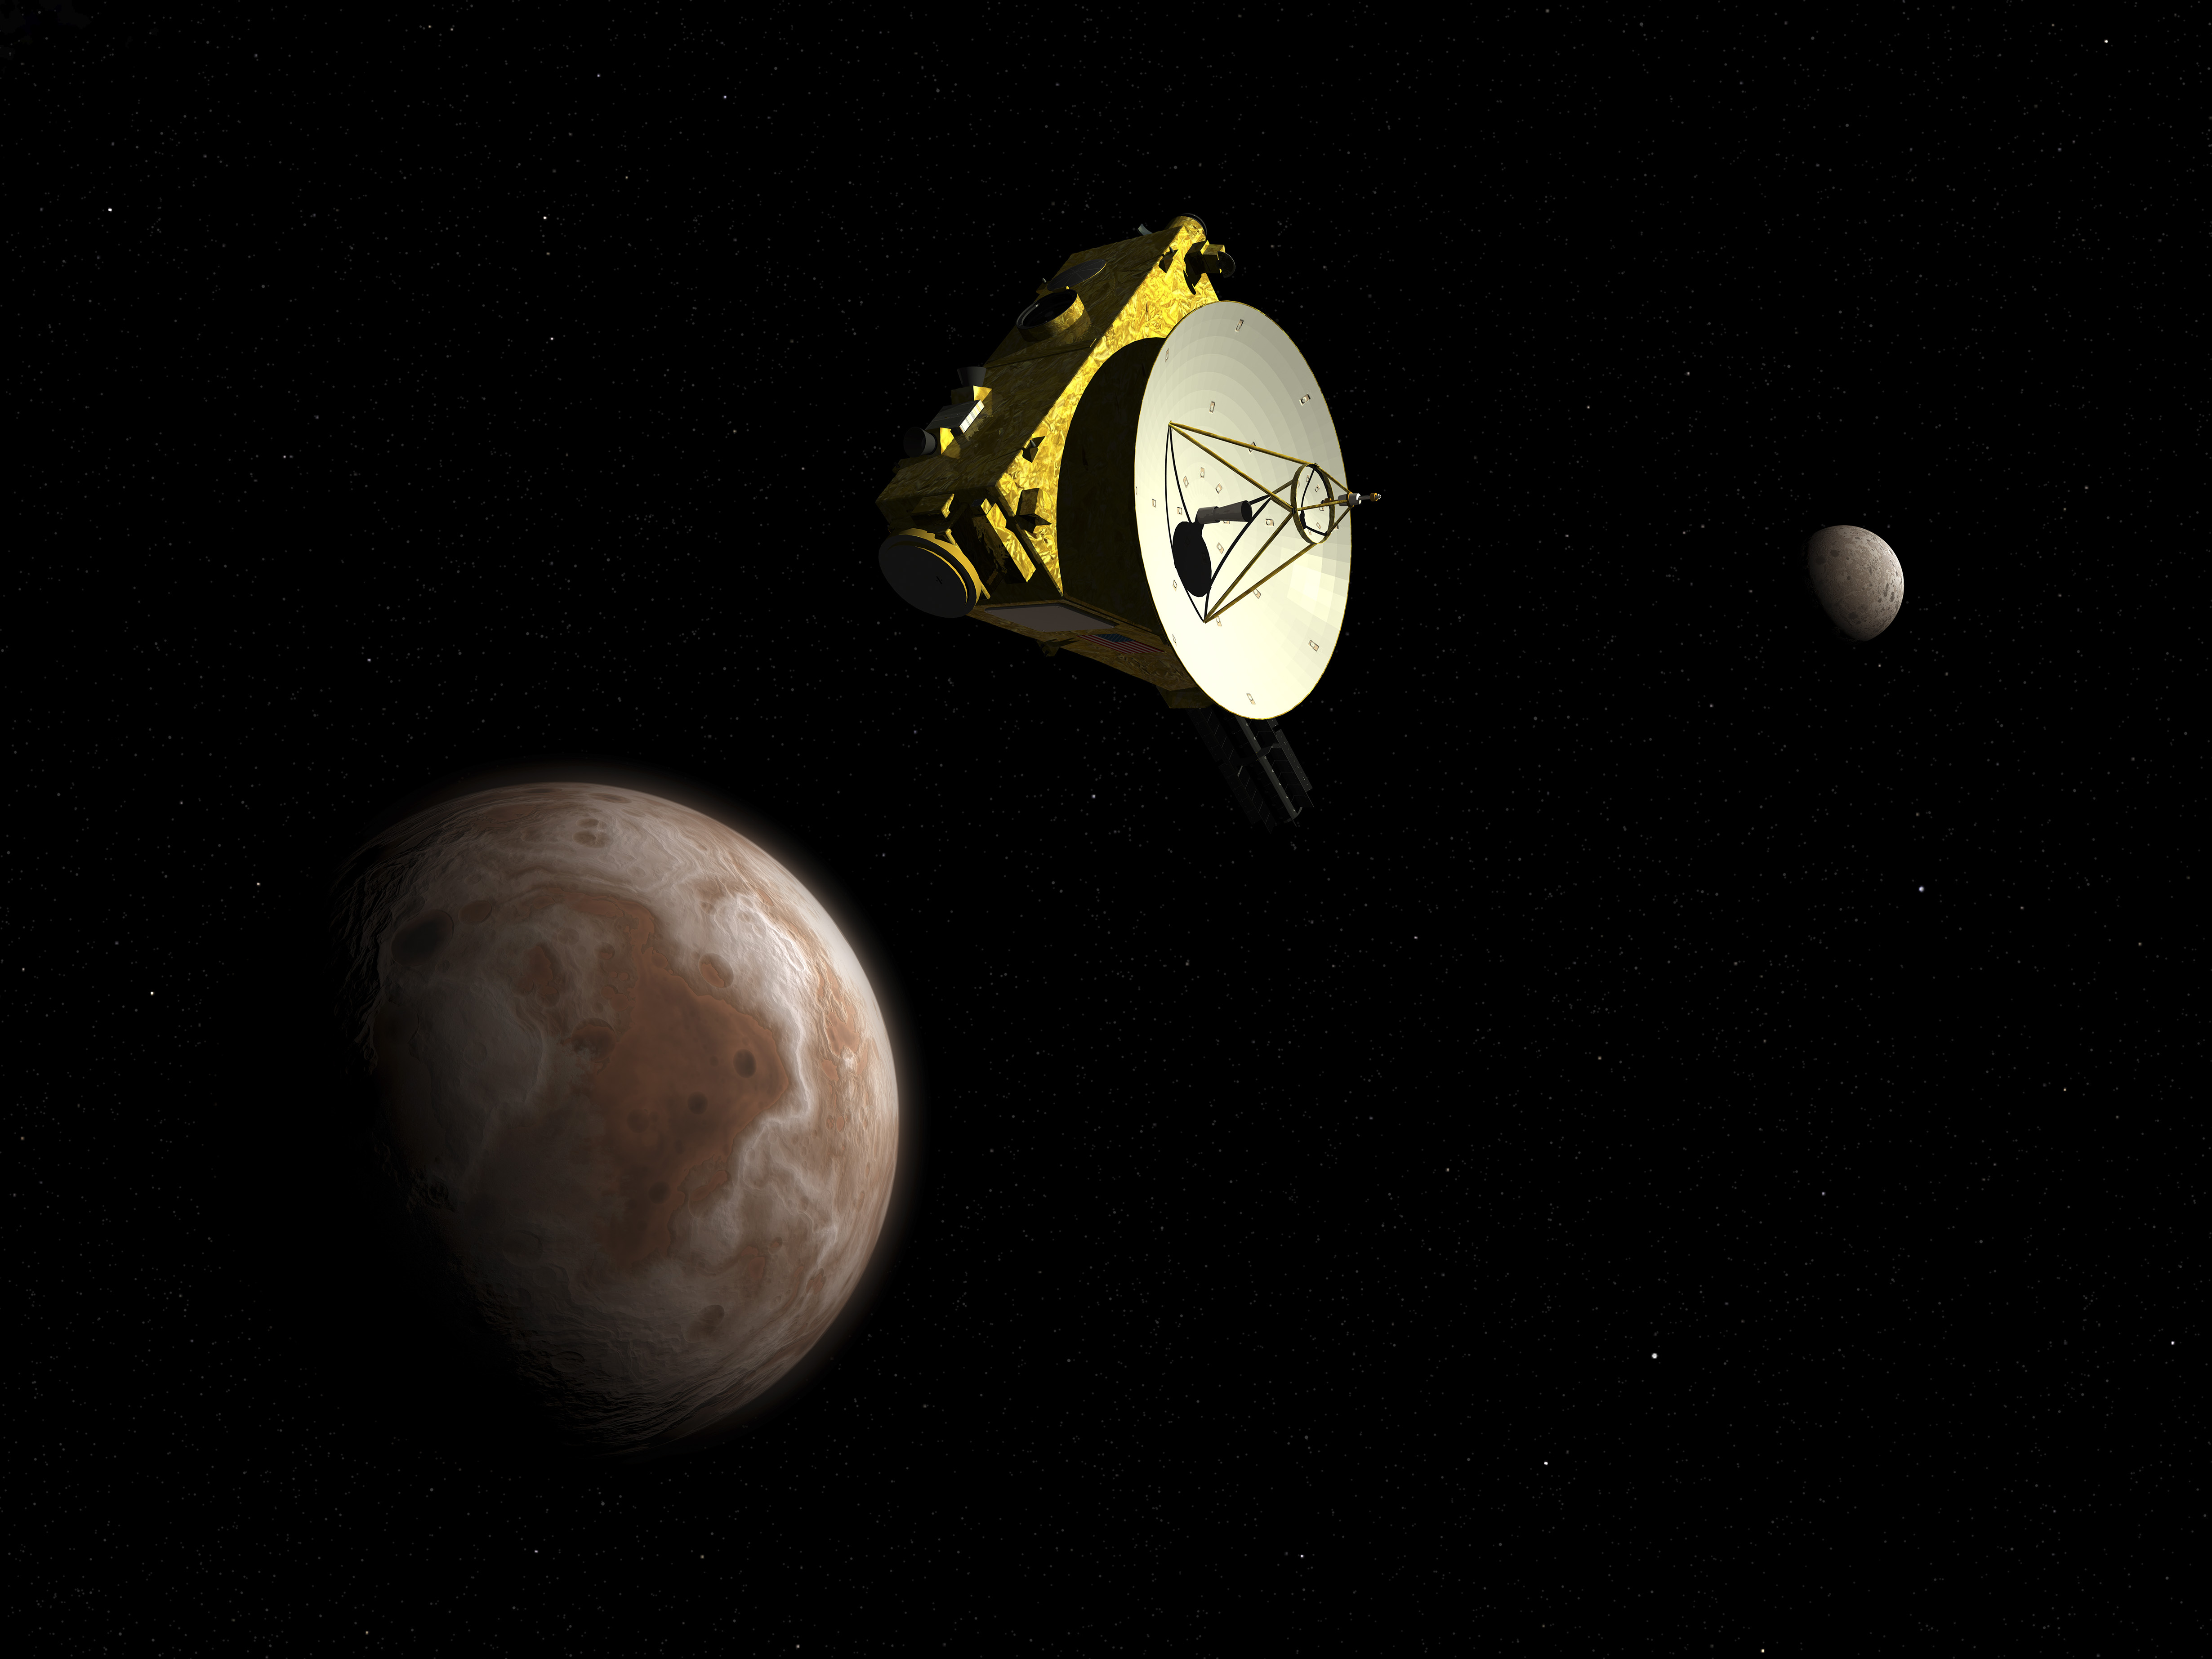 New Horizons spacecraft flies by dwarf planet Pluto and its moon Charon.